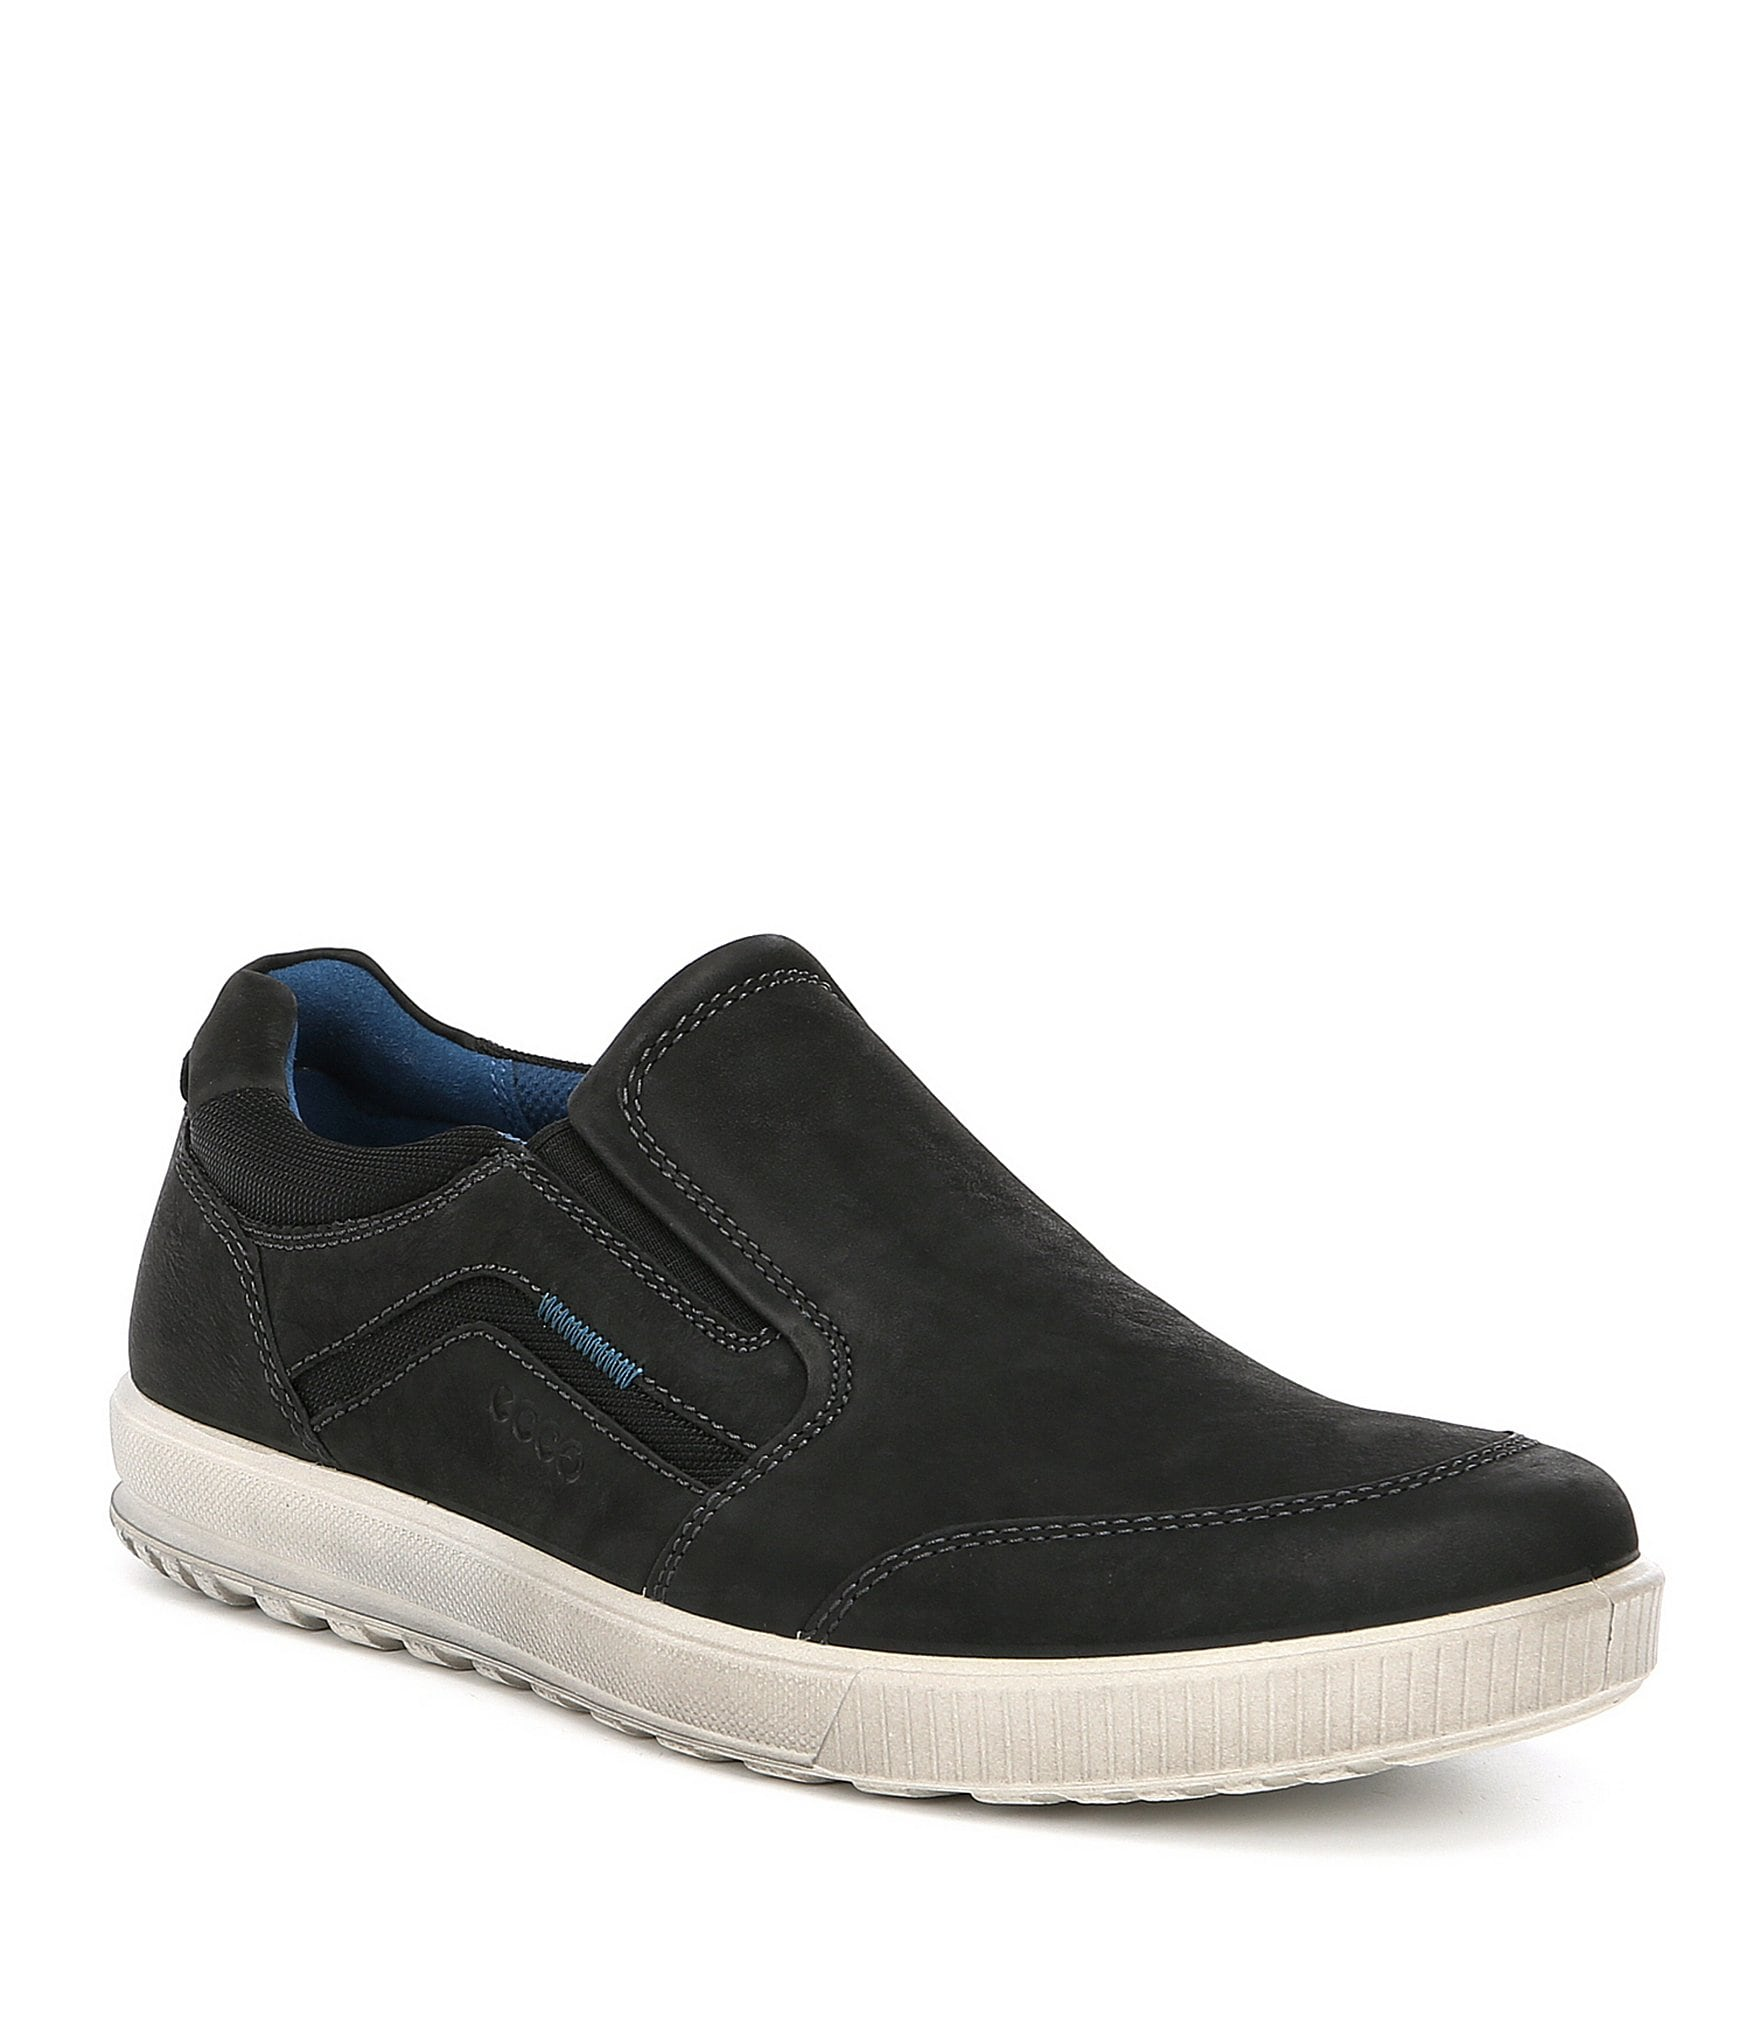 Ecco Ennio Shoes Slip Ons